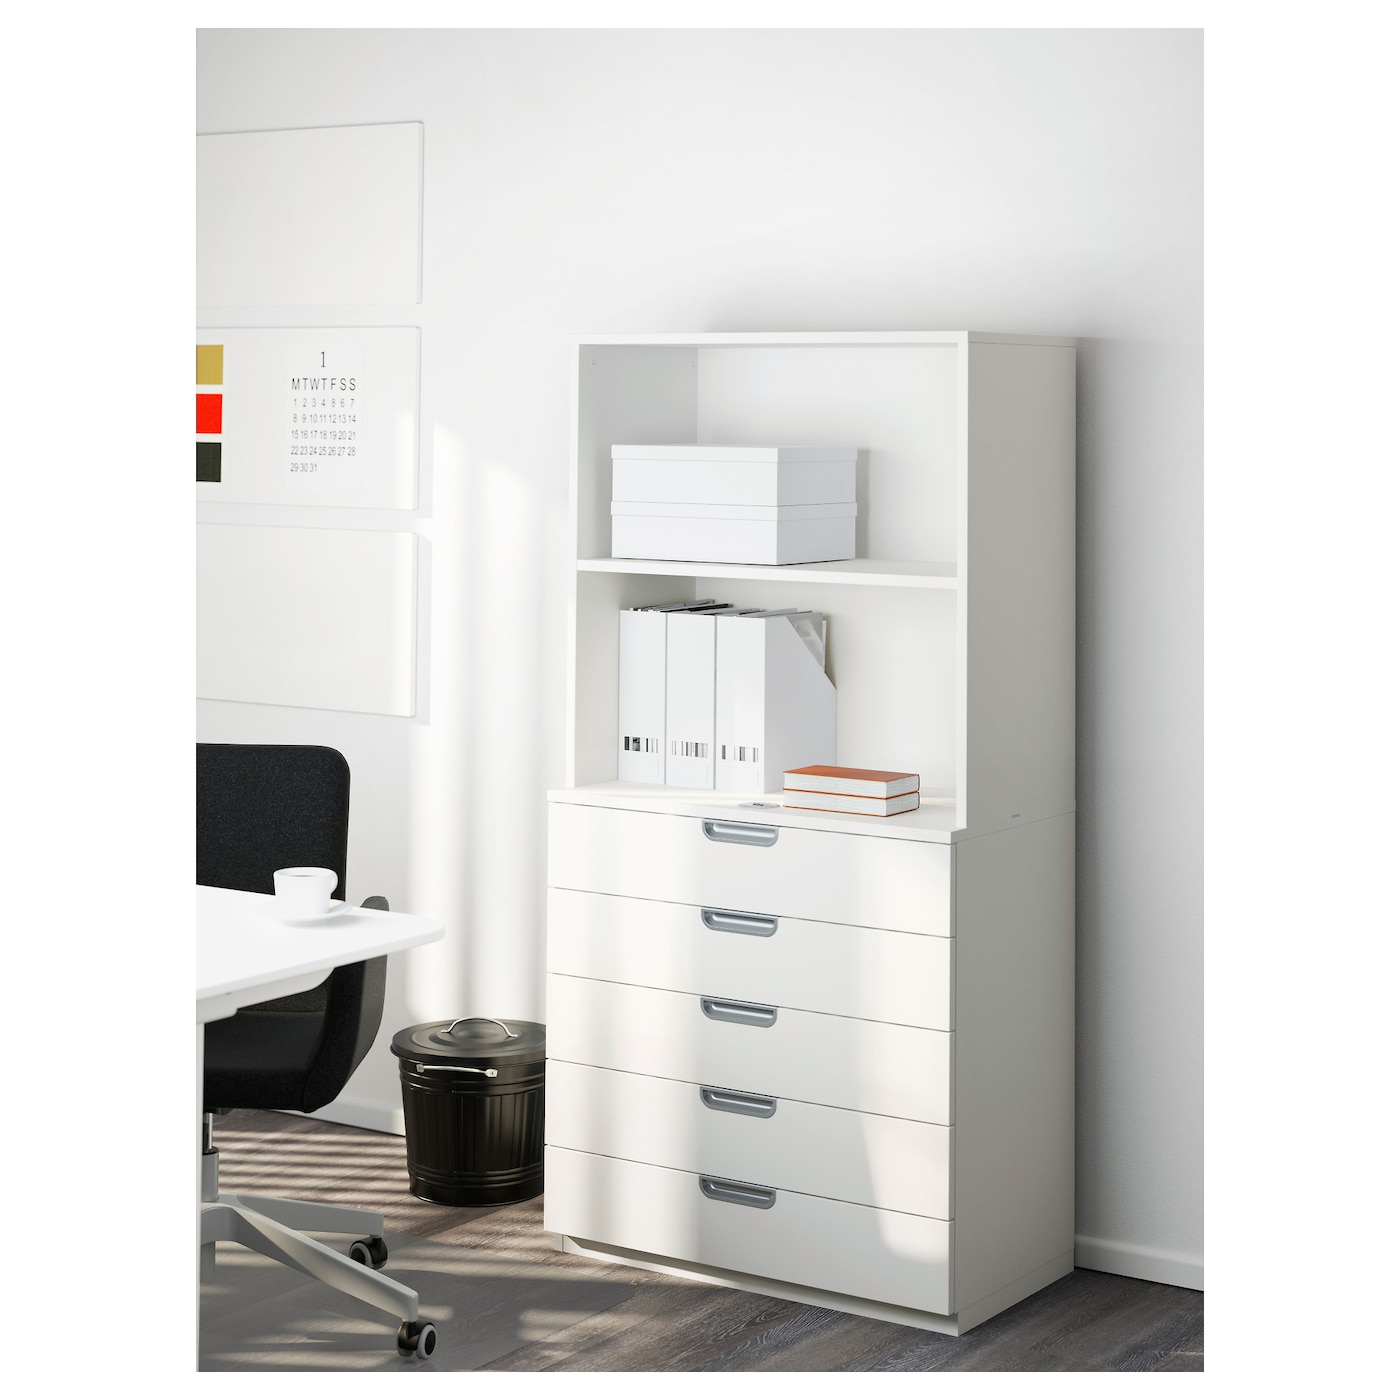 Delicieux IKEA GALANT Storage Combination With Drawers